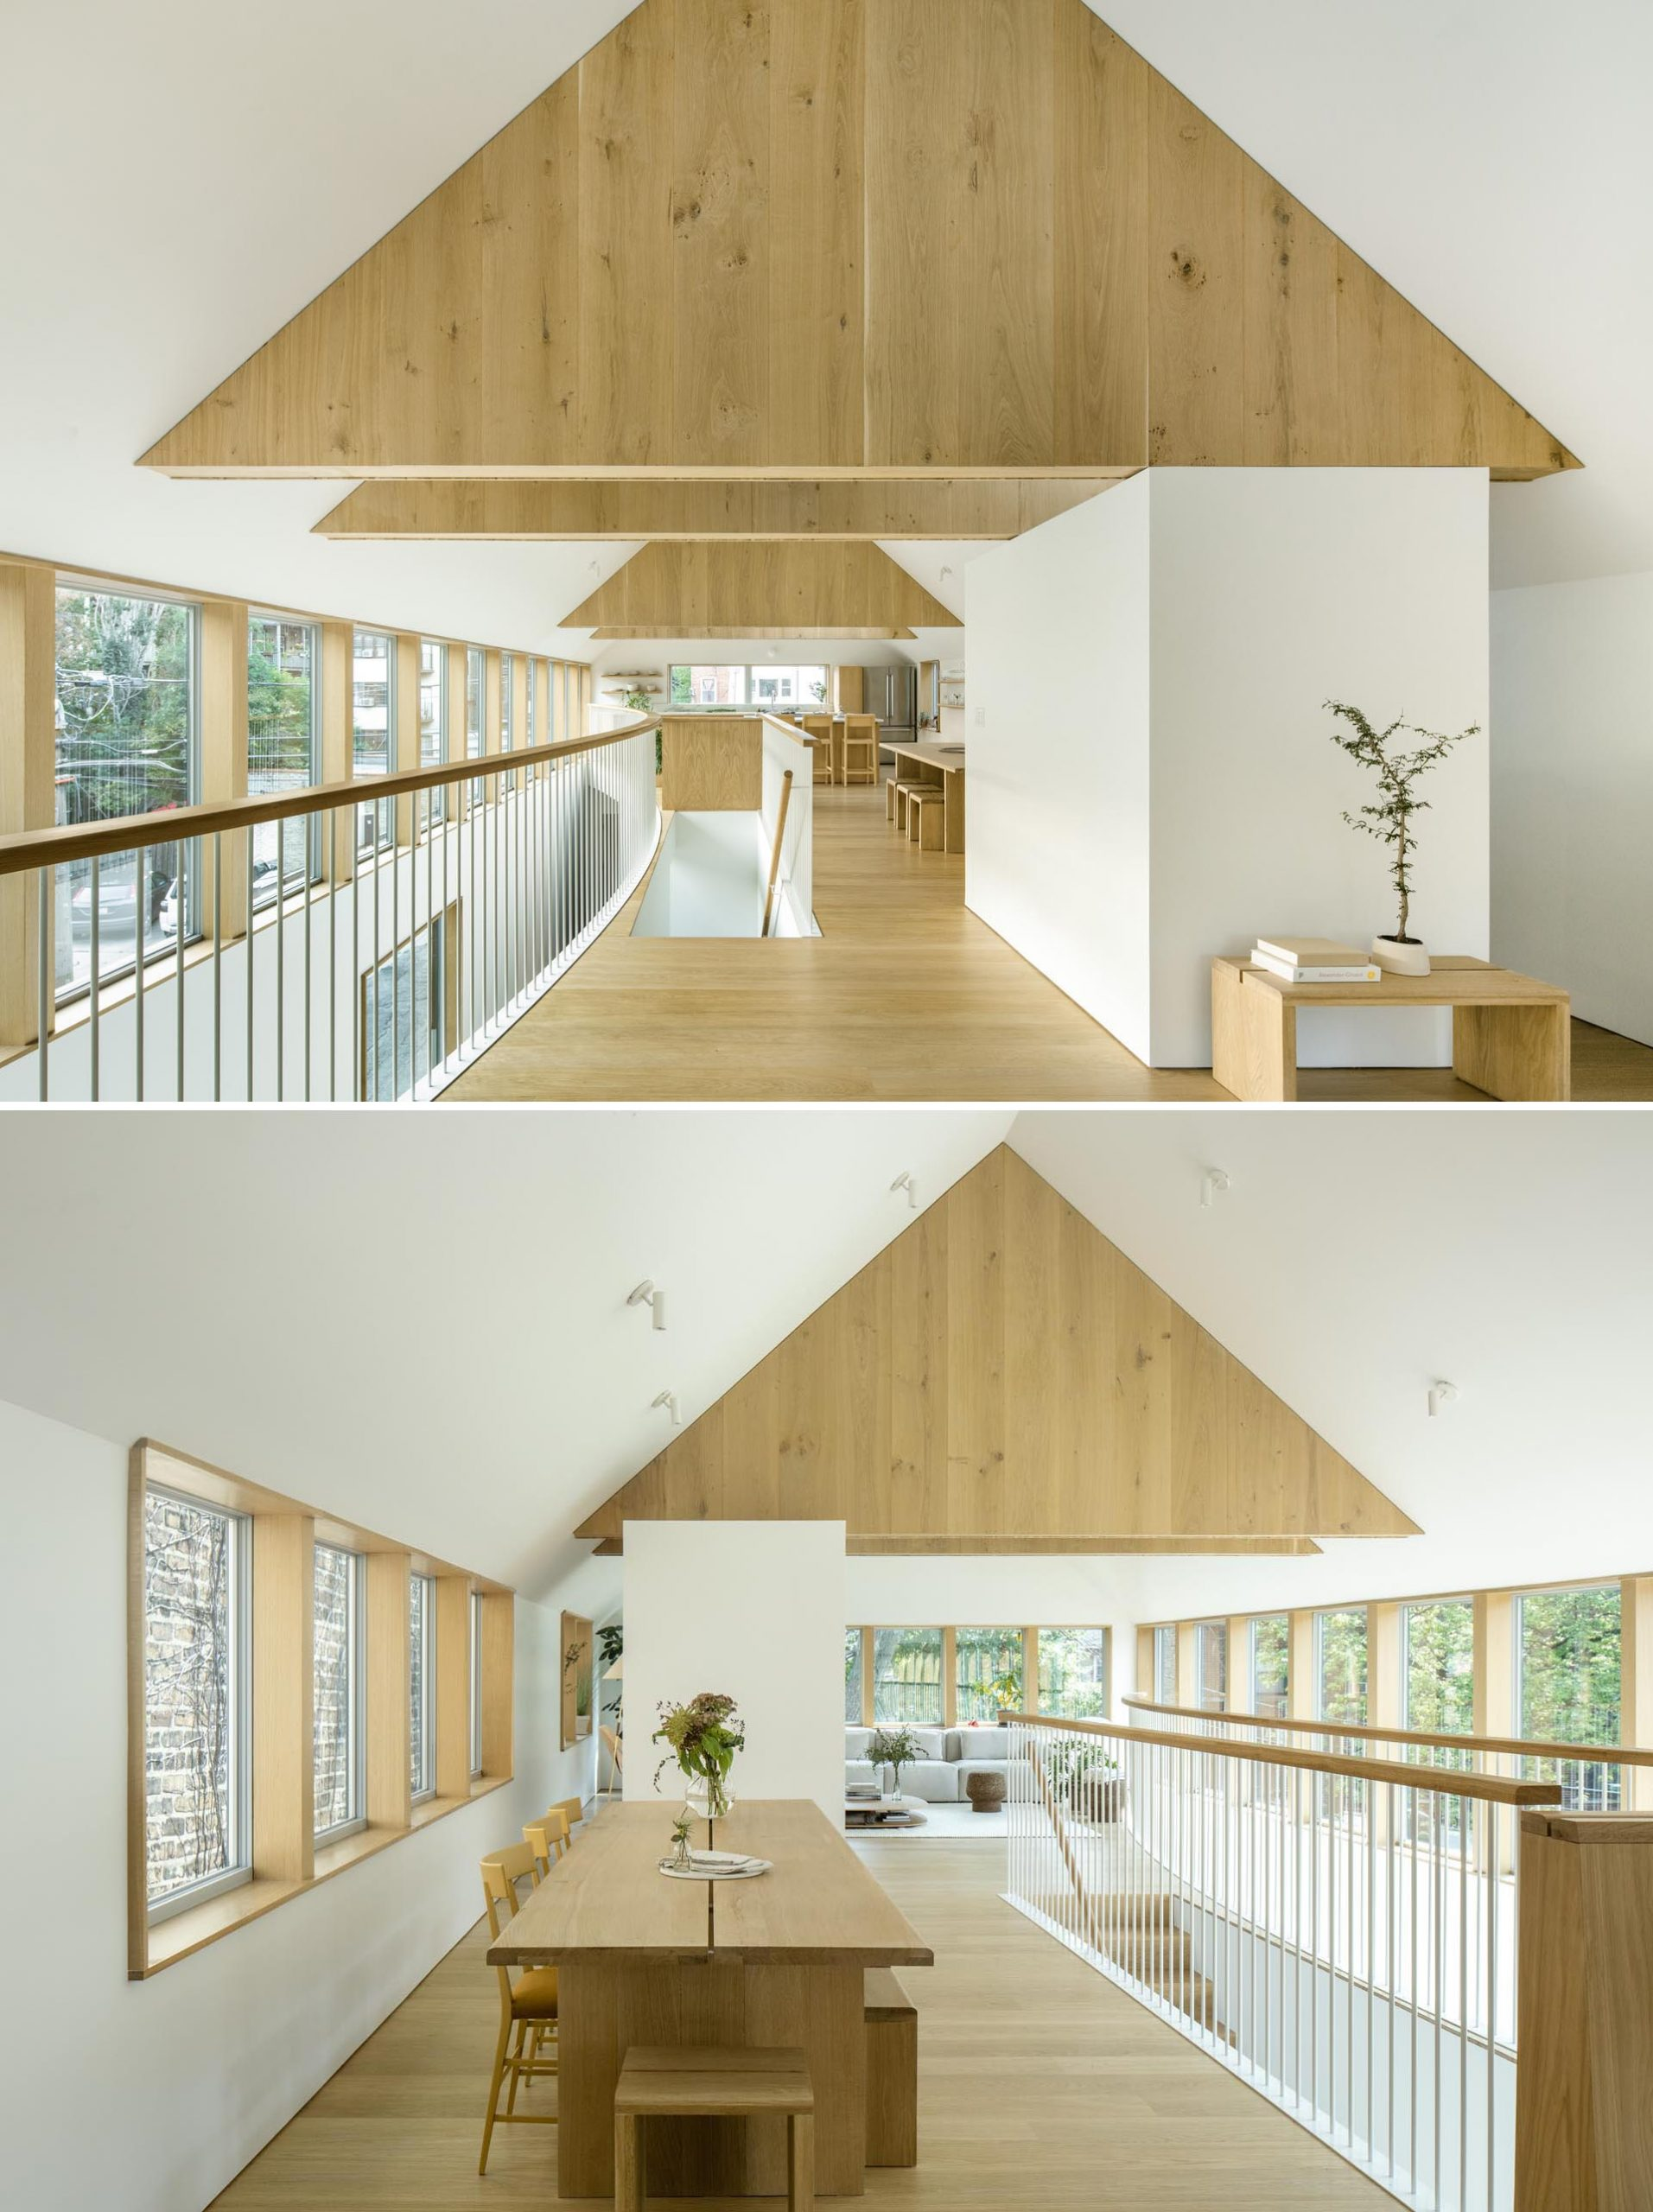 The dining room is centrally located on the upper floor of this modern home, while the flooring and other wood elements like the trusses are made from white oak.